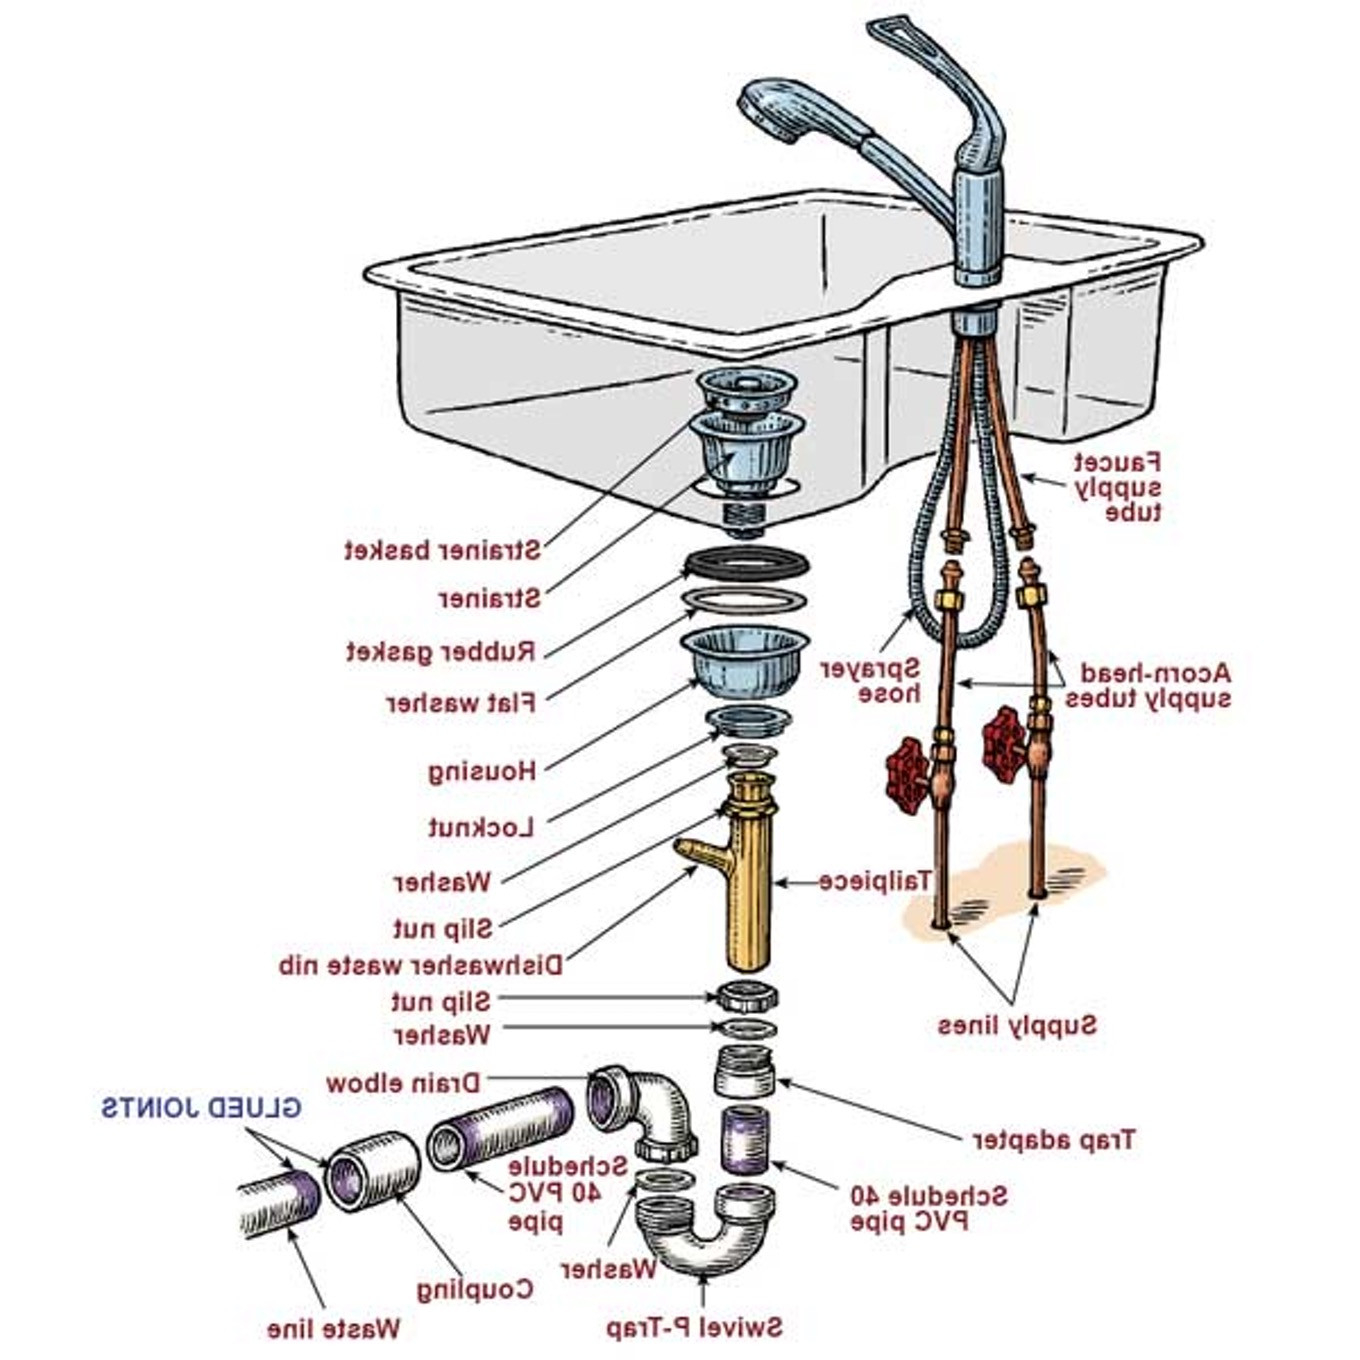 Lovely New Kitchen Sink Plumbing Diagram With Disposal Two Sink Parts Of A pertaining to High Quality Kitchen Sink Diagram